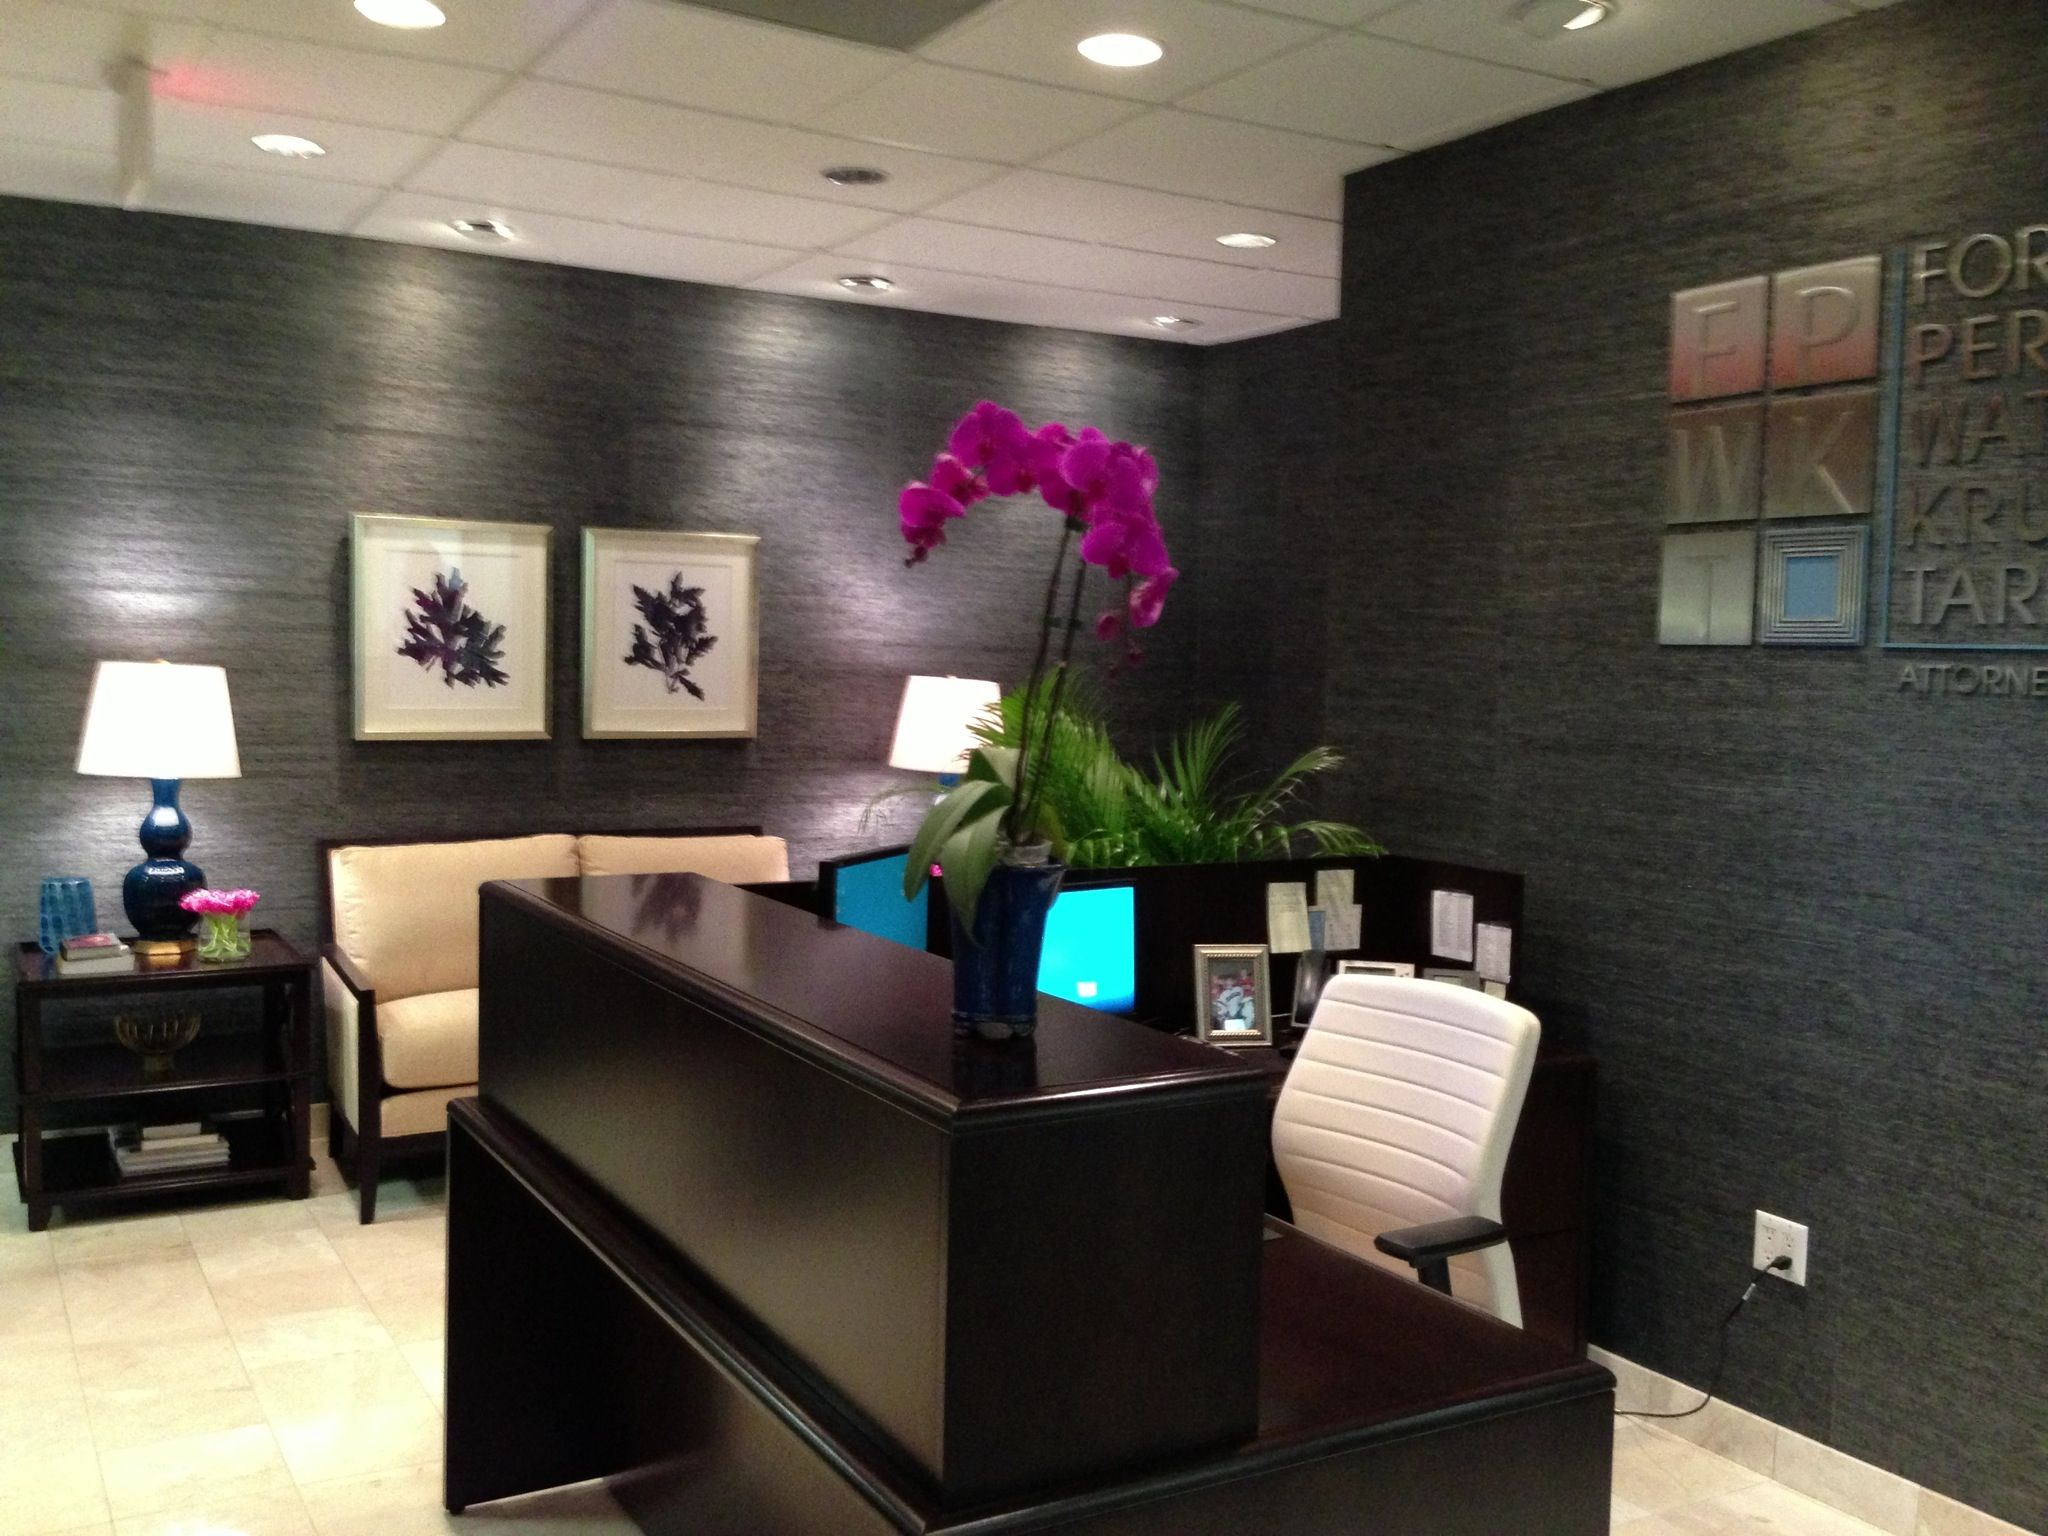 A law firm reception area by christina kim interior design for Law office design ideas